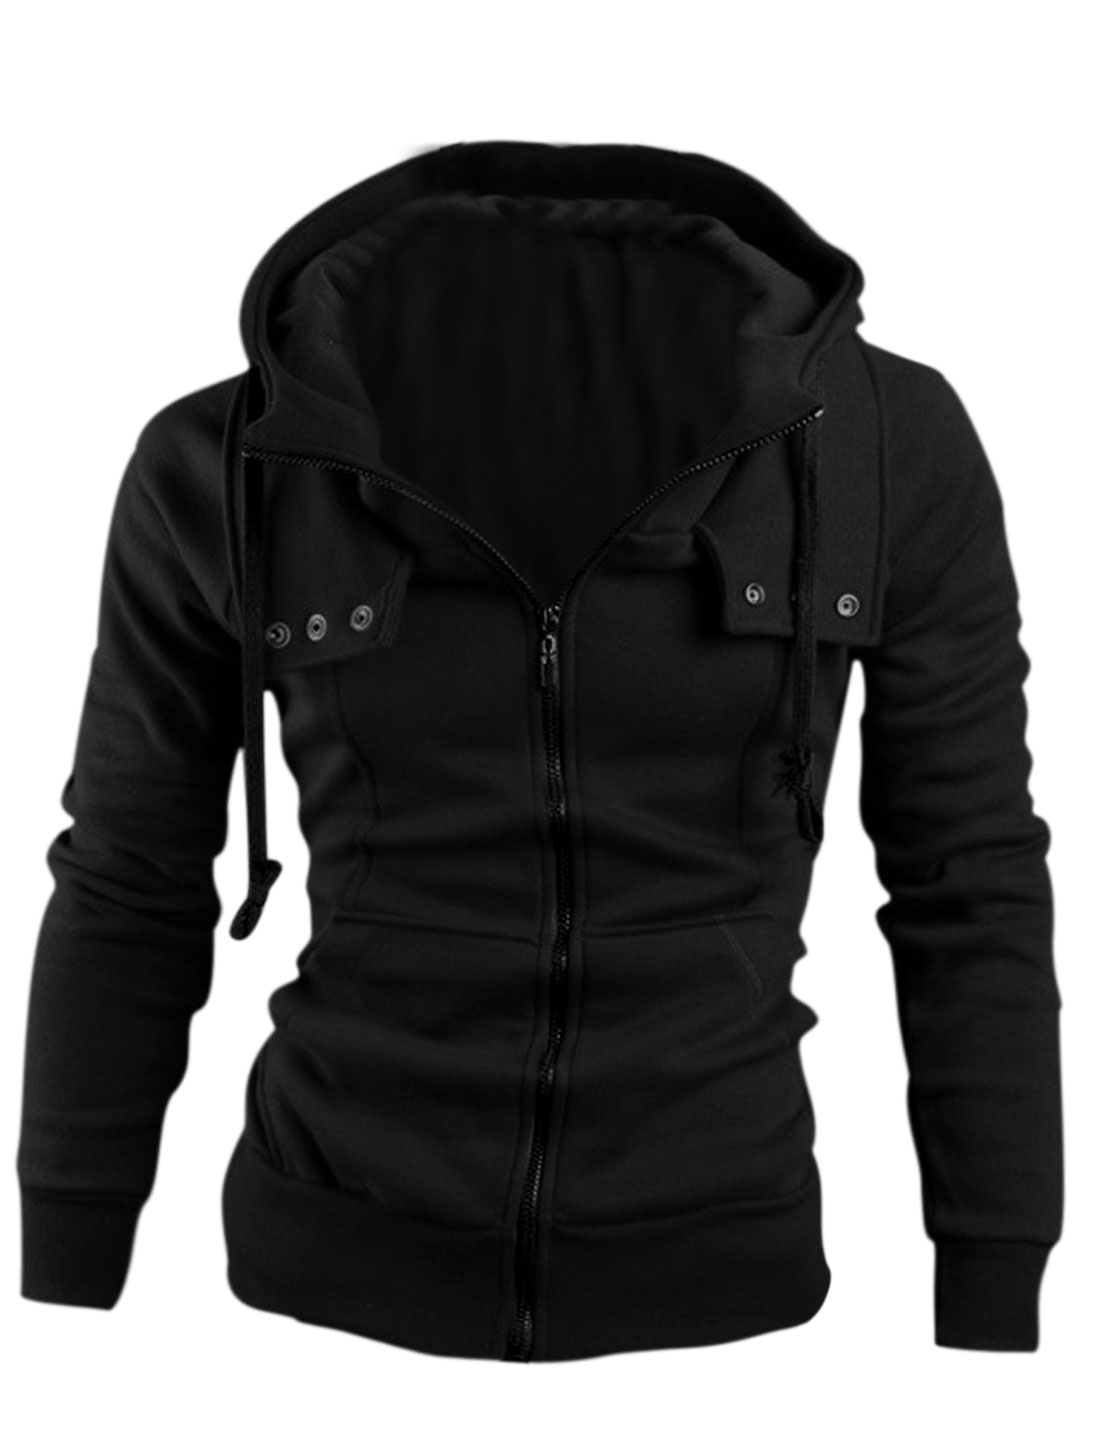 Men's Zip Up Front Pockets Drawstring Hooded Jacket Black M